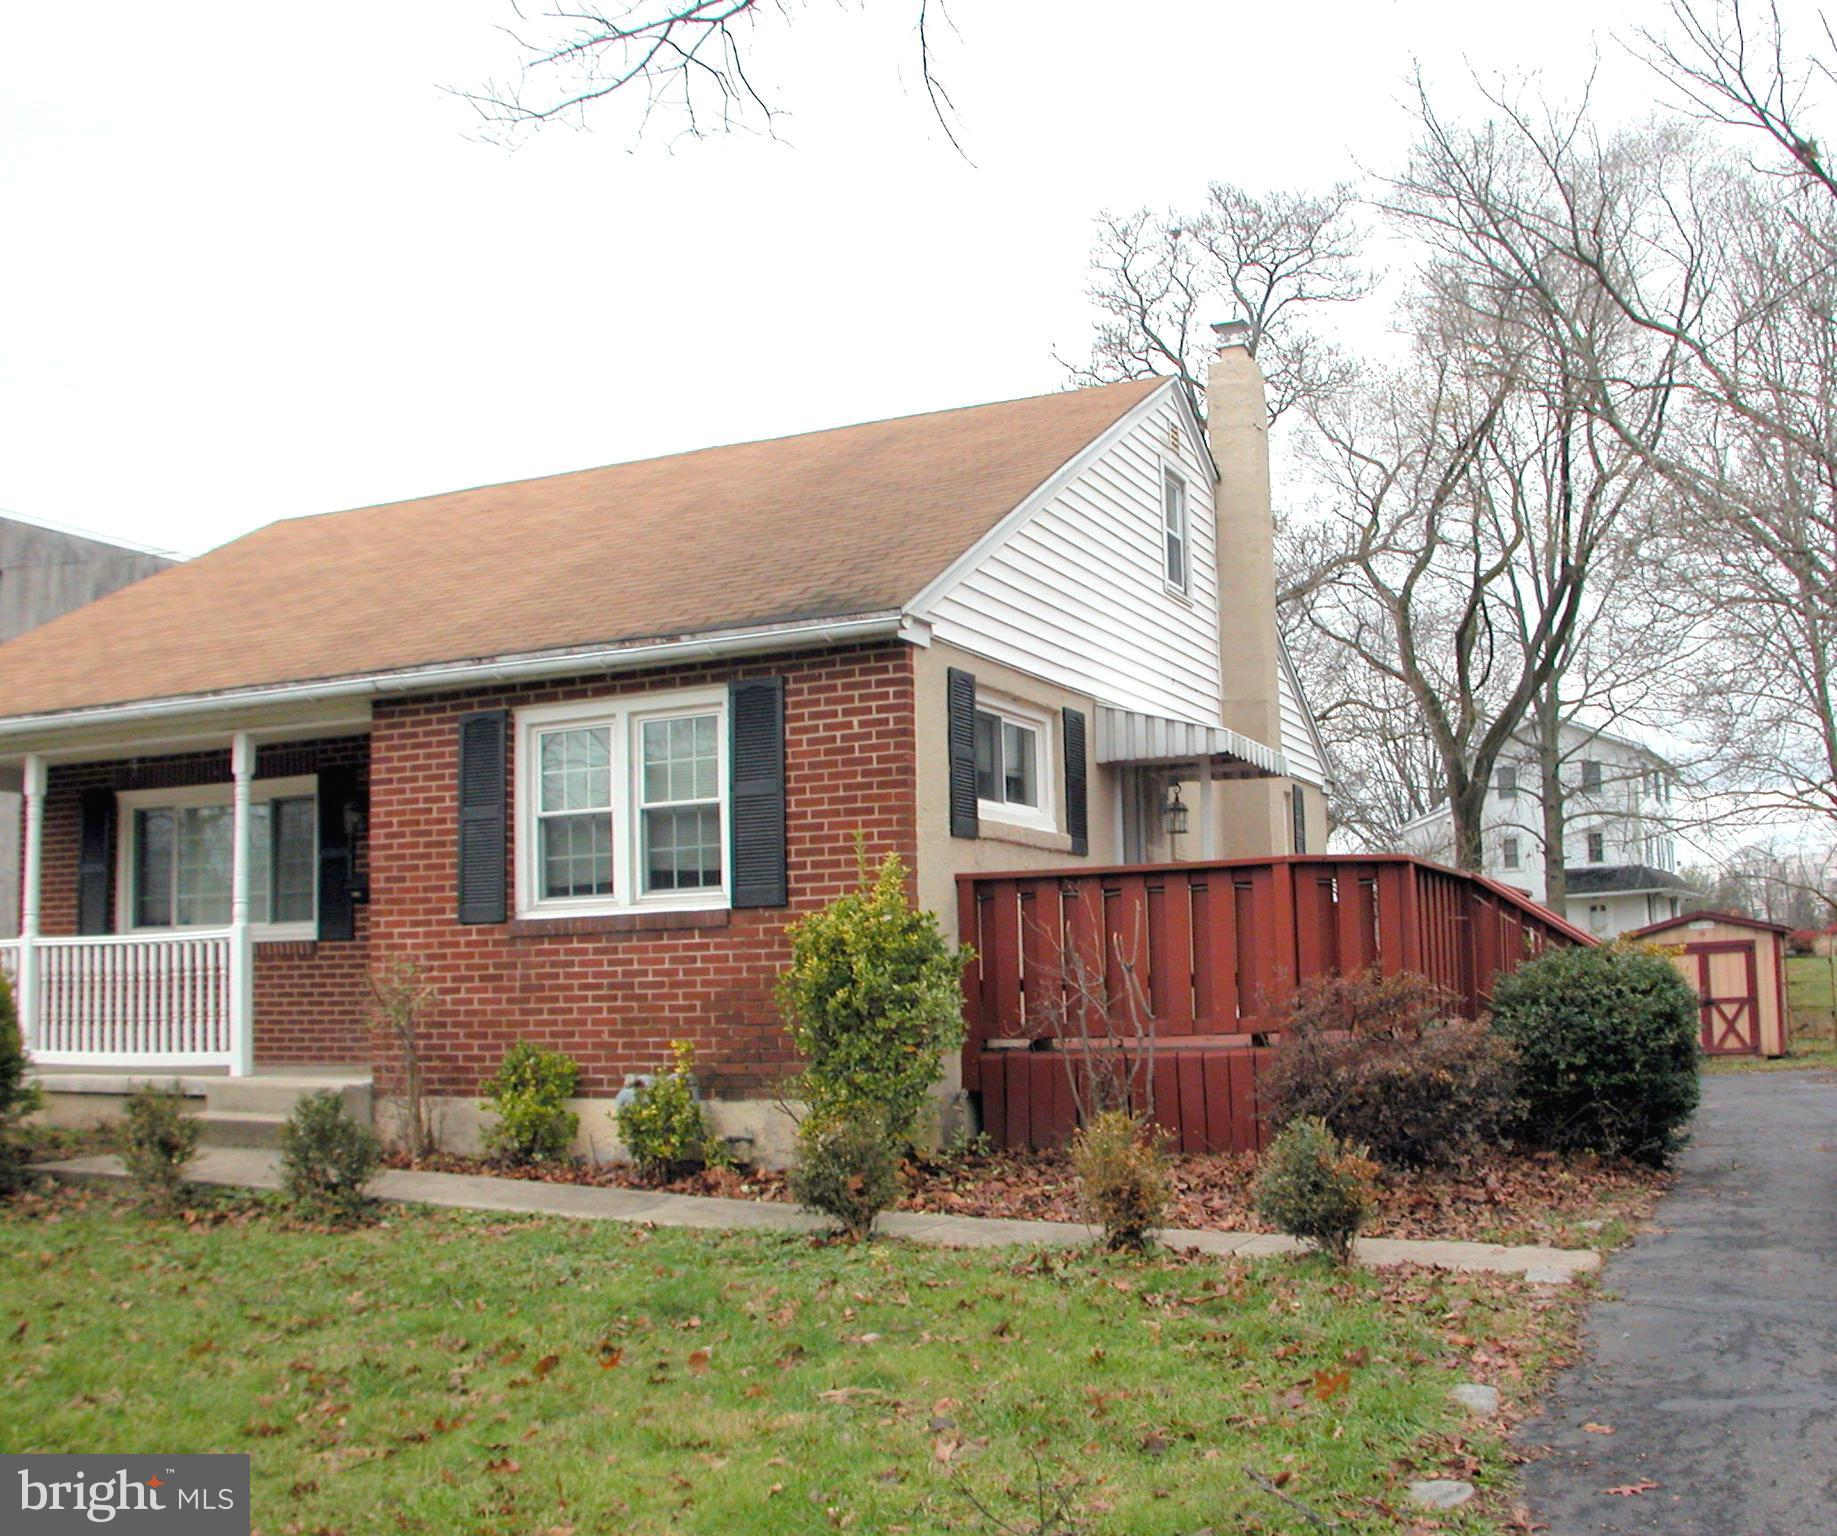 Updated Cape with 3 bedrooms, 1.5 baths and a remodeled kitchen with pantry, newer counter tops and a breakfast  bar with stools.  Spacious dining room open to kitchen.  Carpeting in living room and first floor bedroom, hardwood floors in kitchen and throughout the house.  Private back yard with nice sized driveway including a turn around space and shed for gardening tools.  Full basement and much more.